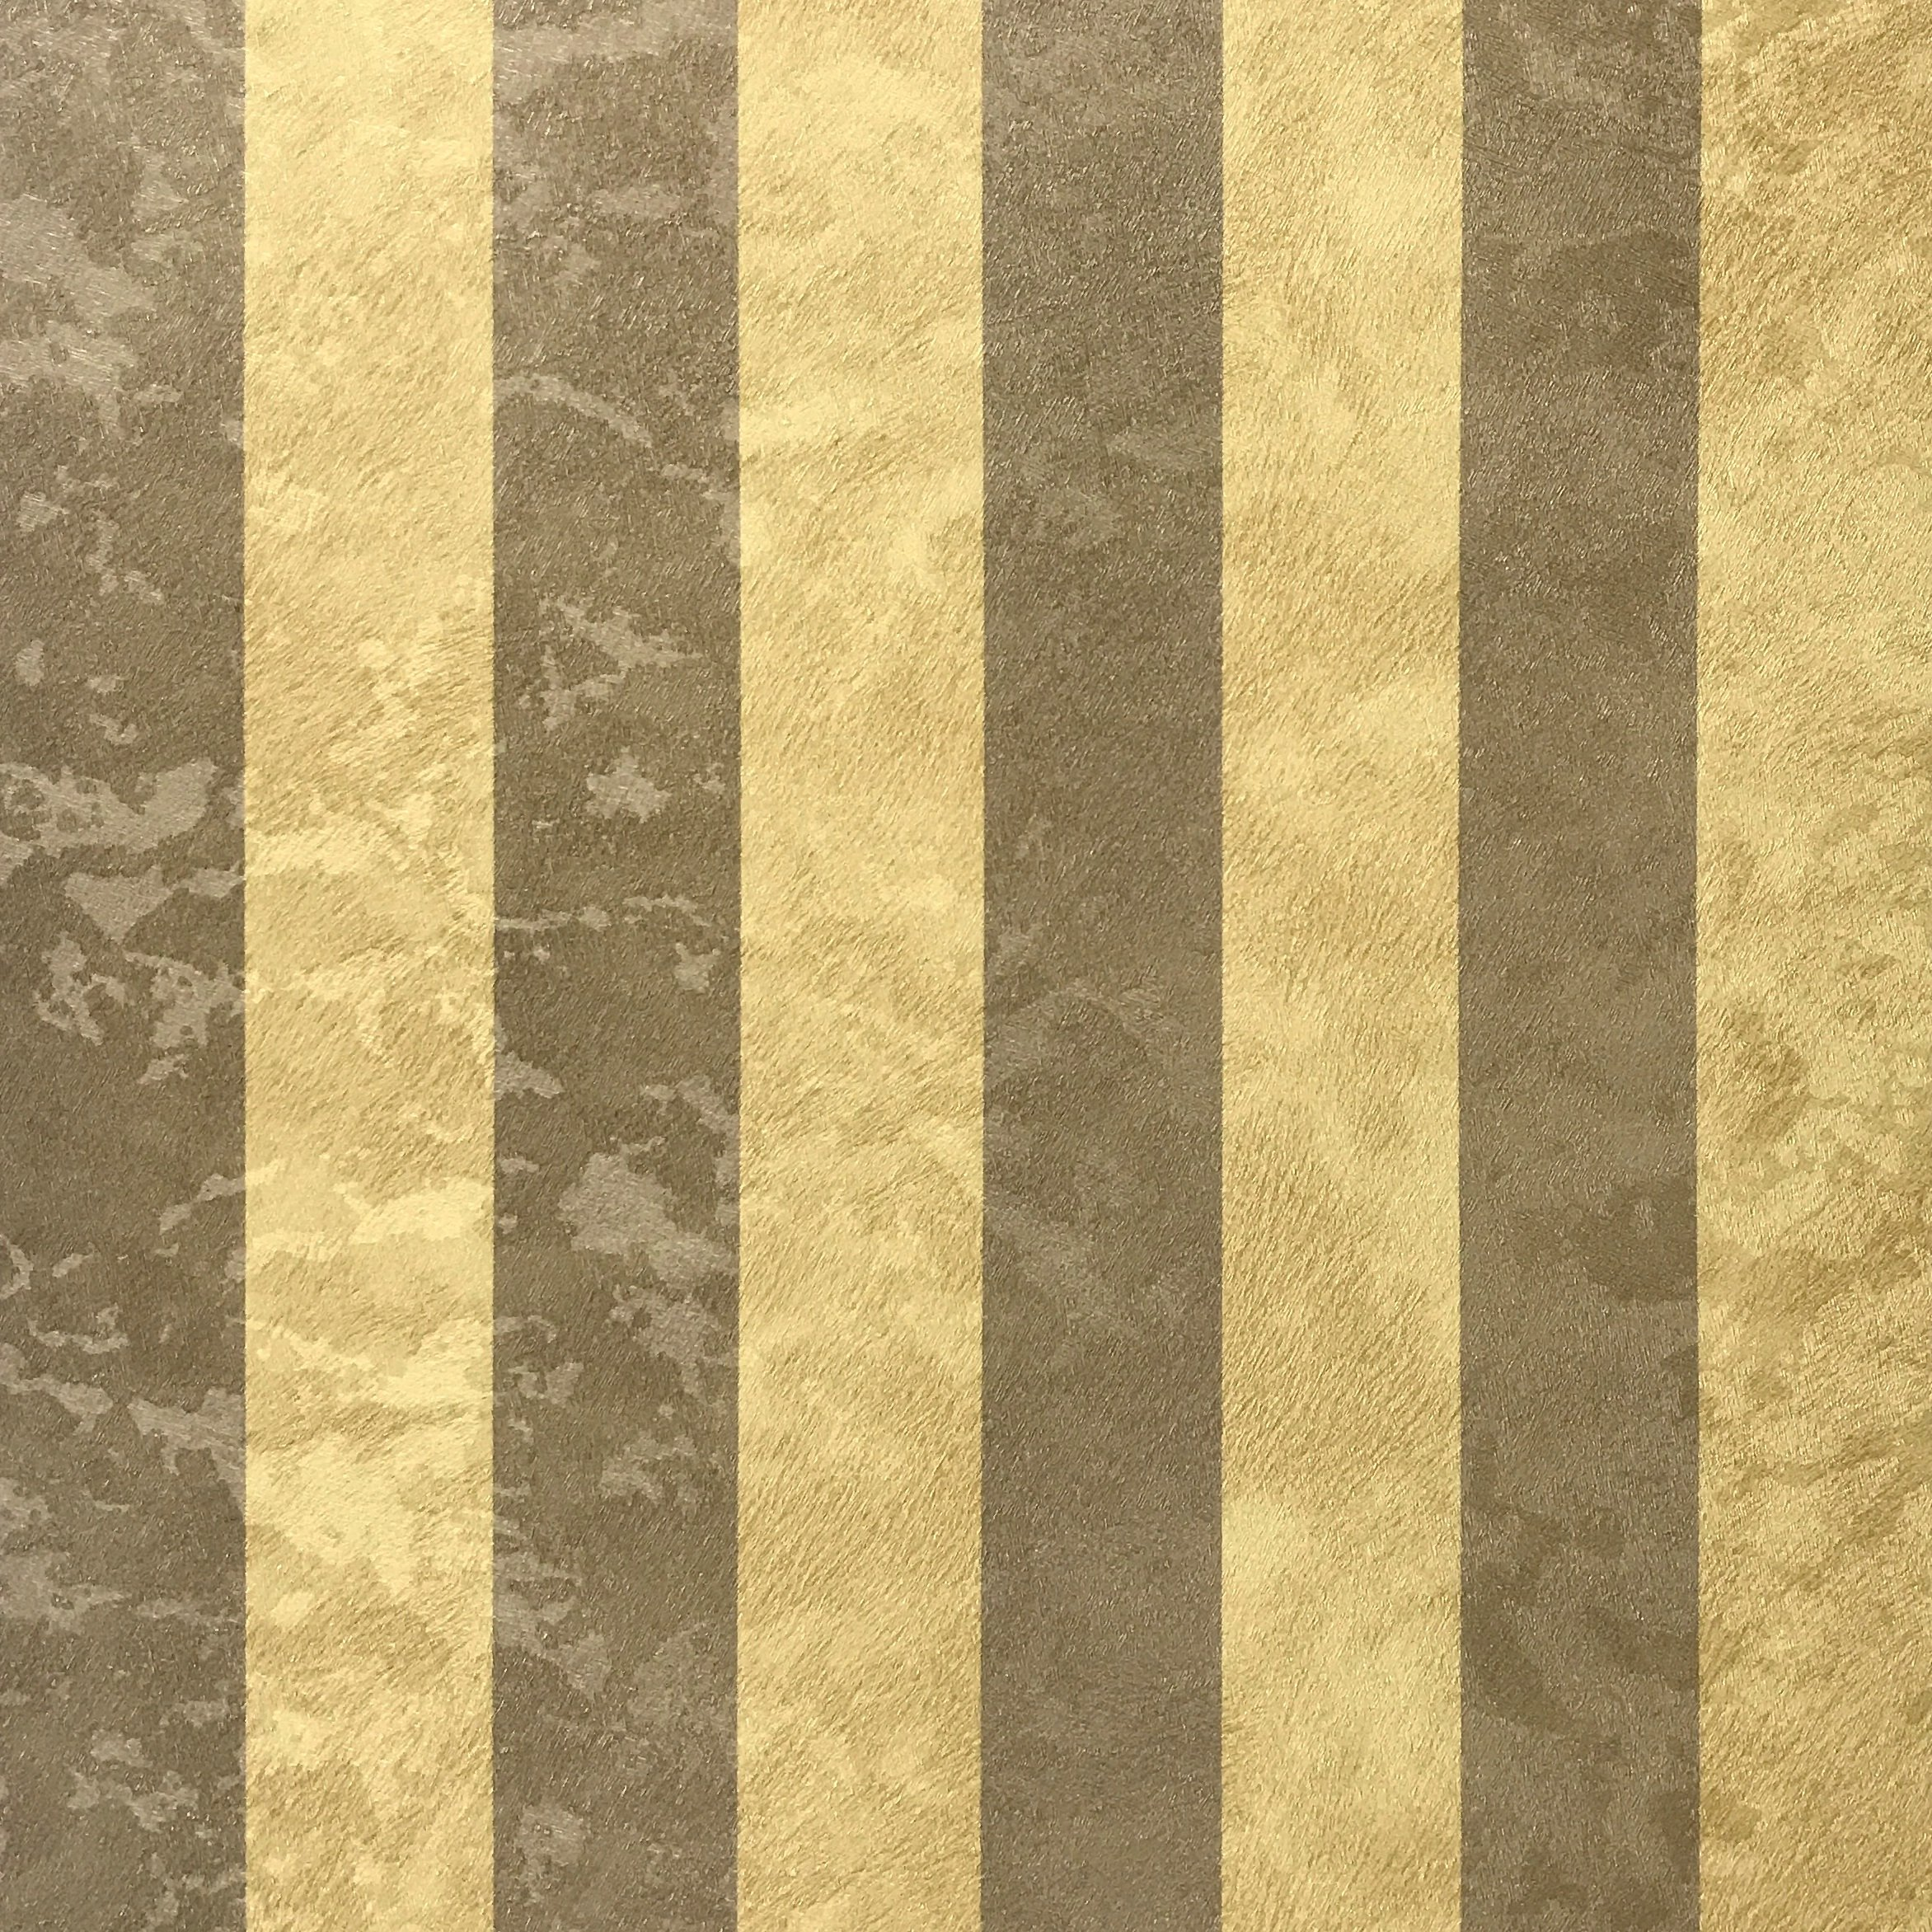 76 sq.ft Made in Italy Portofino textured wallcoverings rolls modern embossed Vinyl Wallpaper gold bronze metallic stripes mustard faux wool fabric striped lines design textures roll 3D wall coverings by Portofino